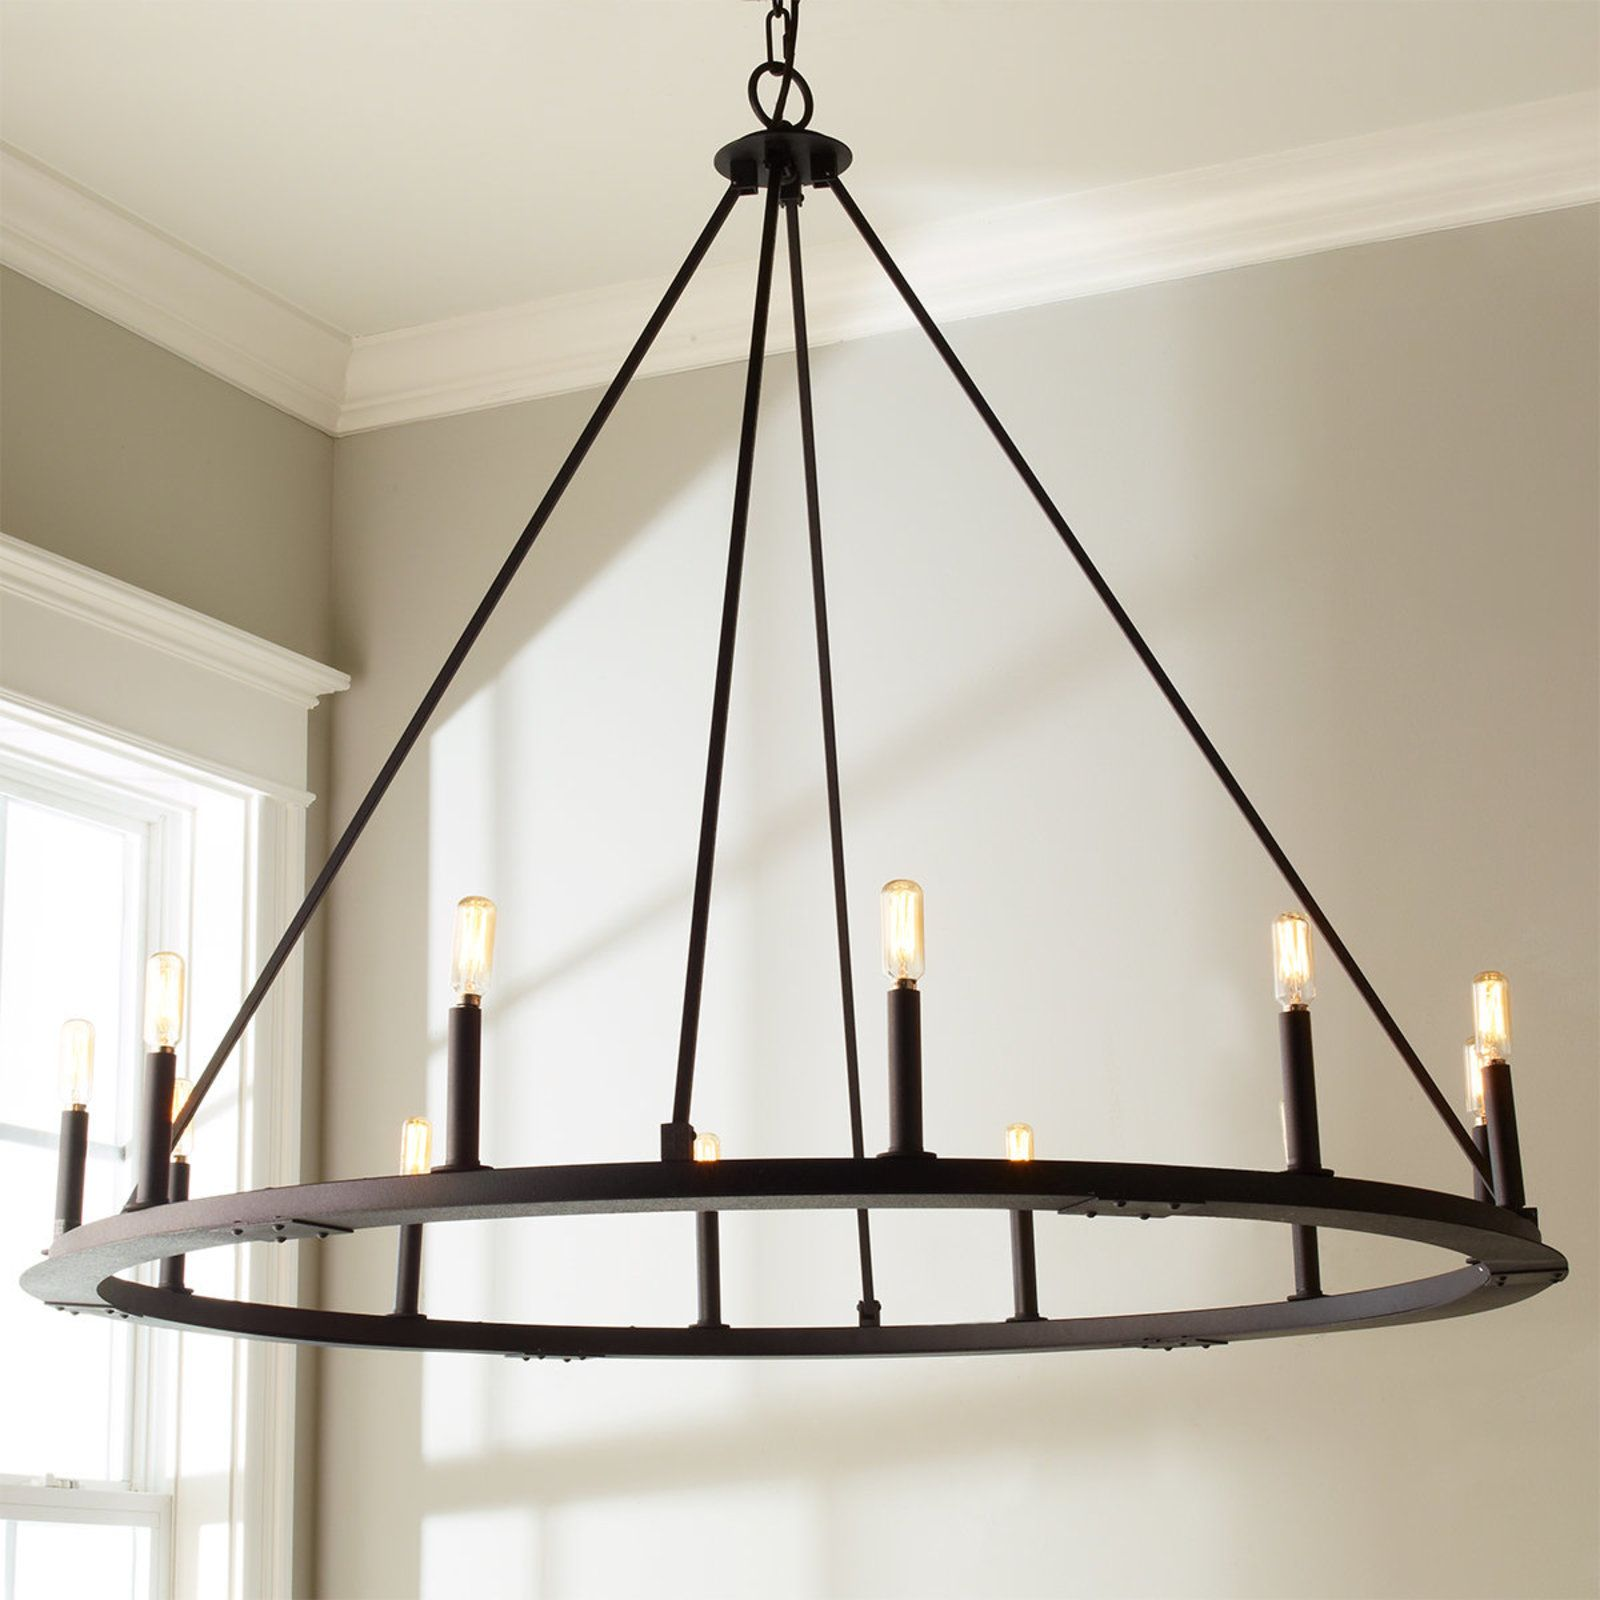 Aiwen Wrought Iron Lamps Country Retro Simple Chandelier Black 12